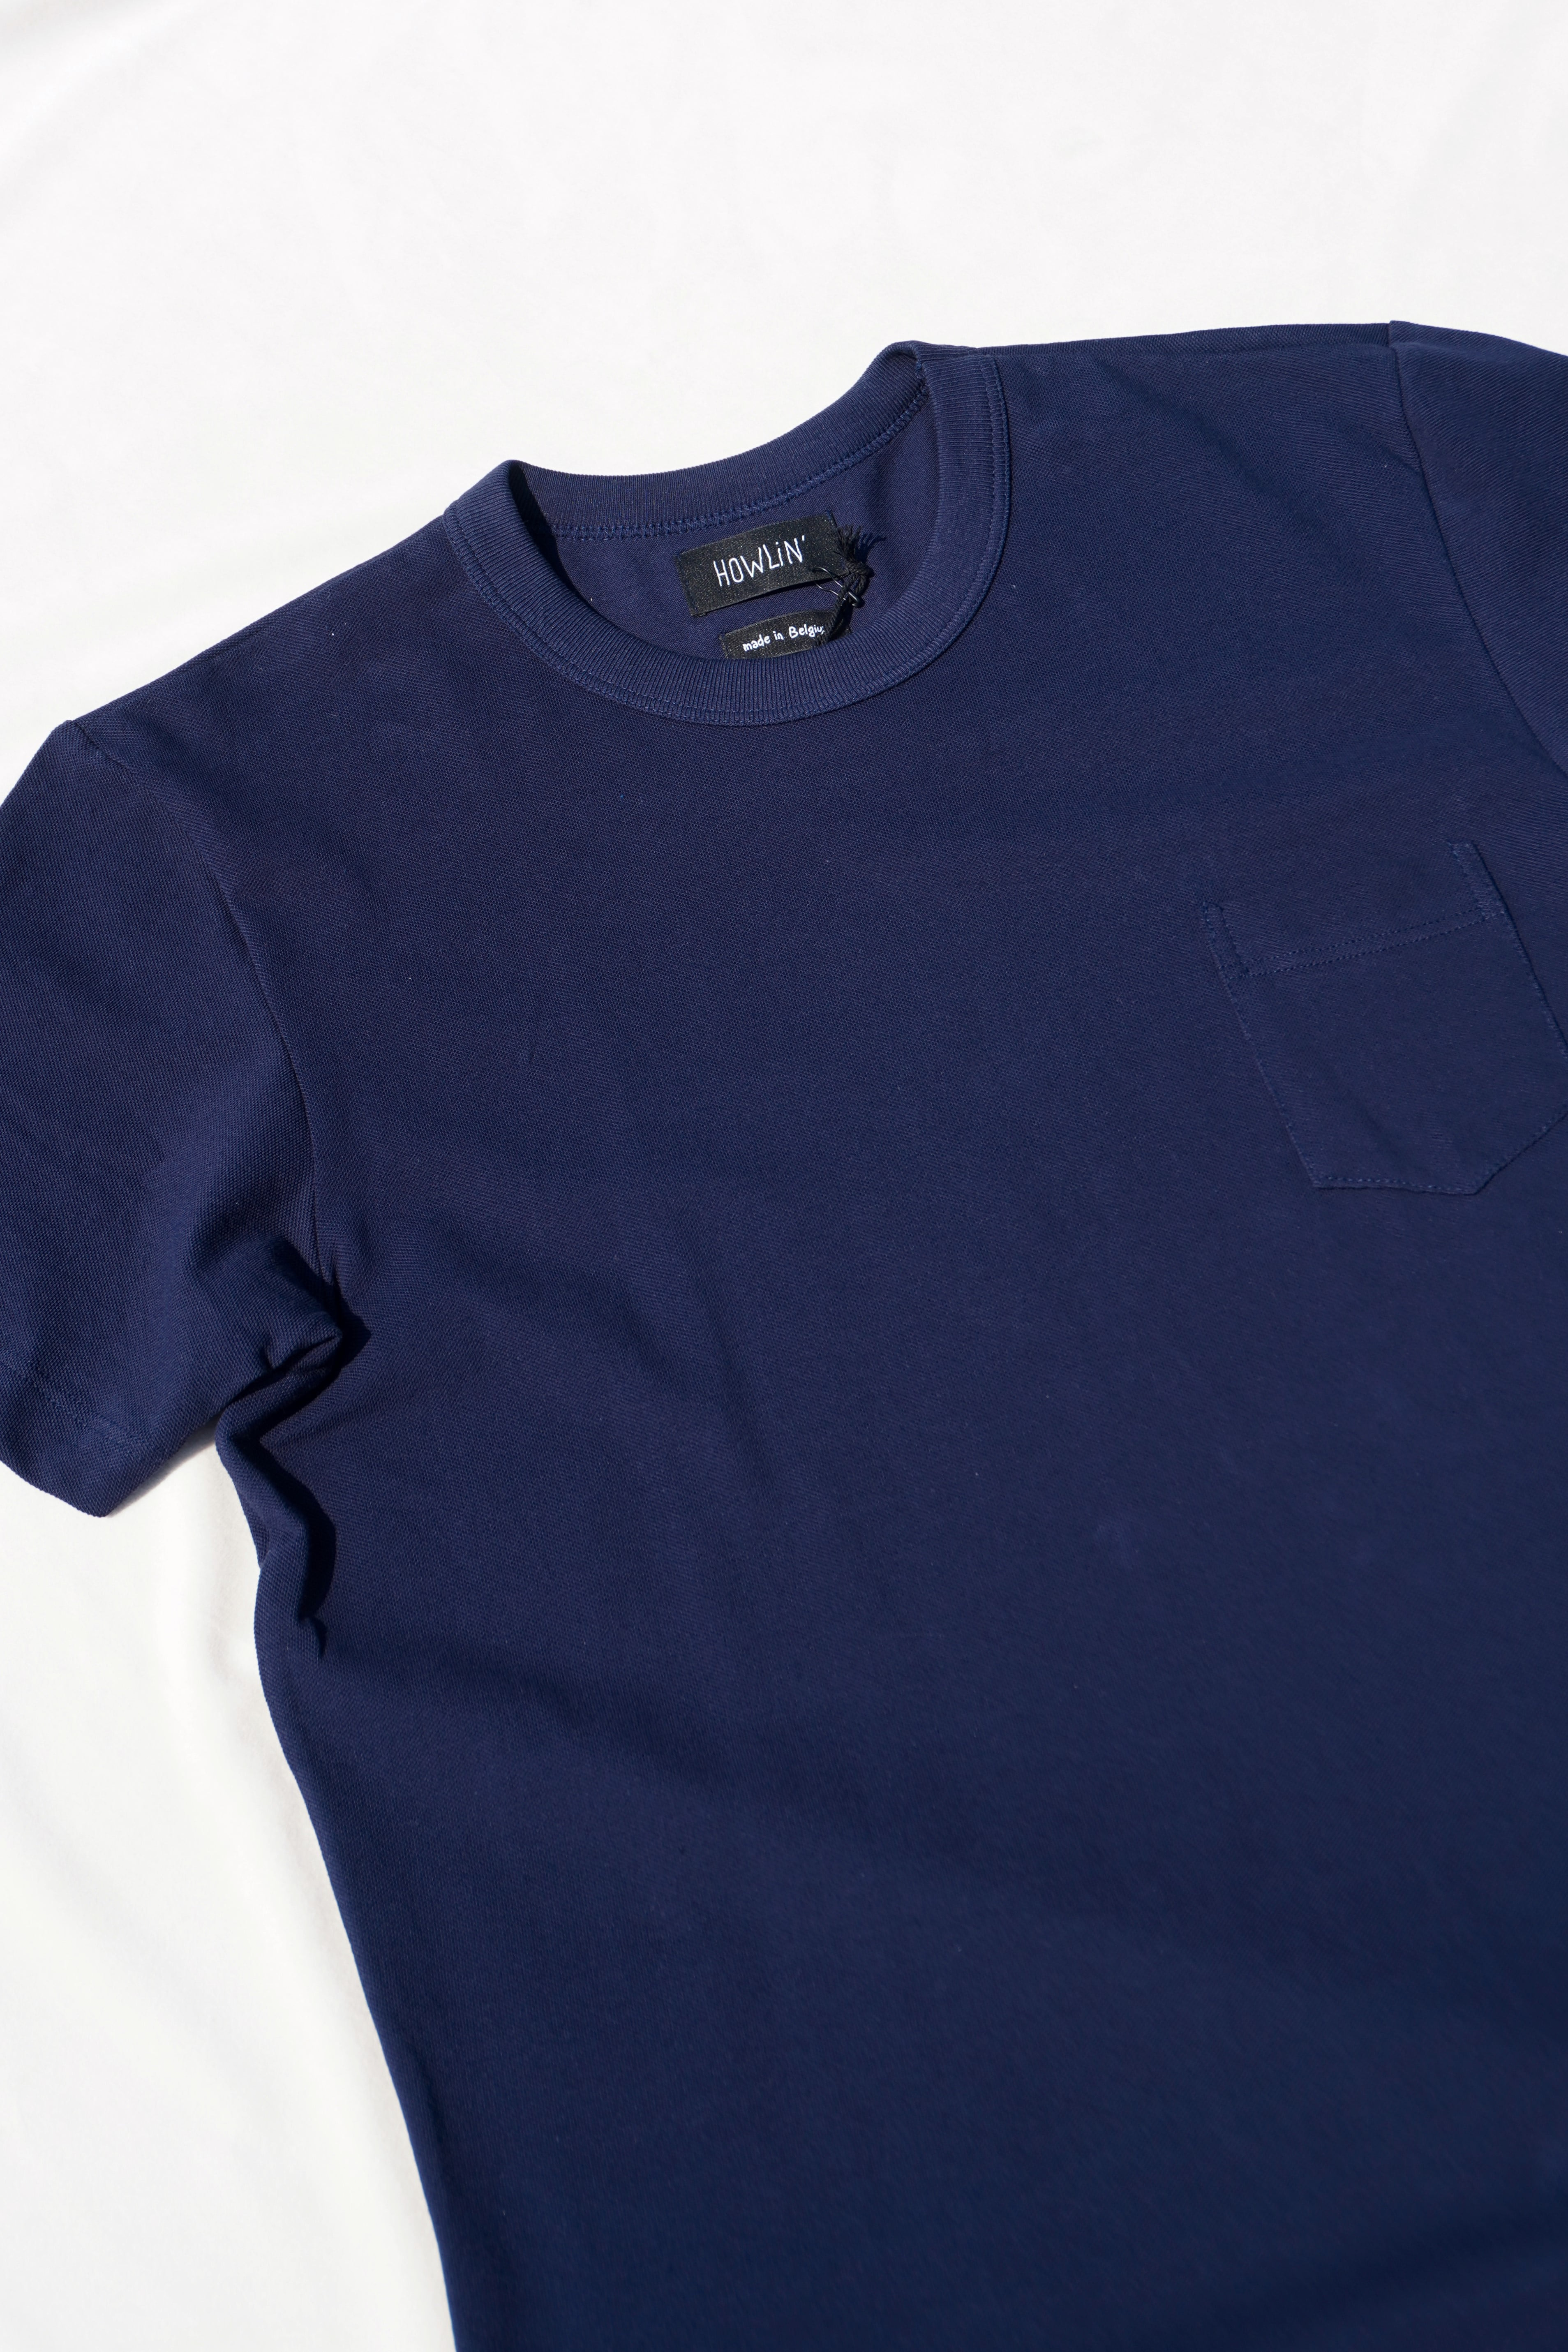 [HOWLIN'] Don't Stop The Tshirt - Navy